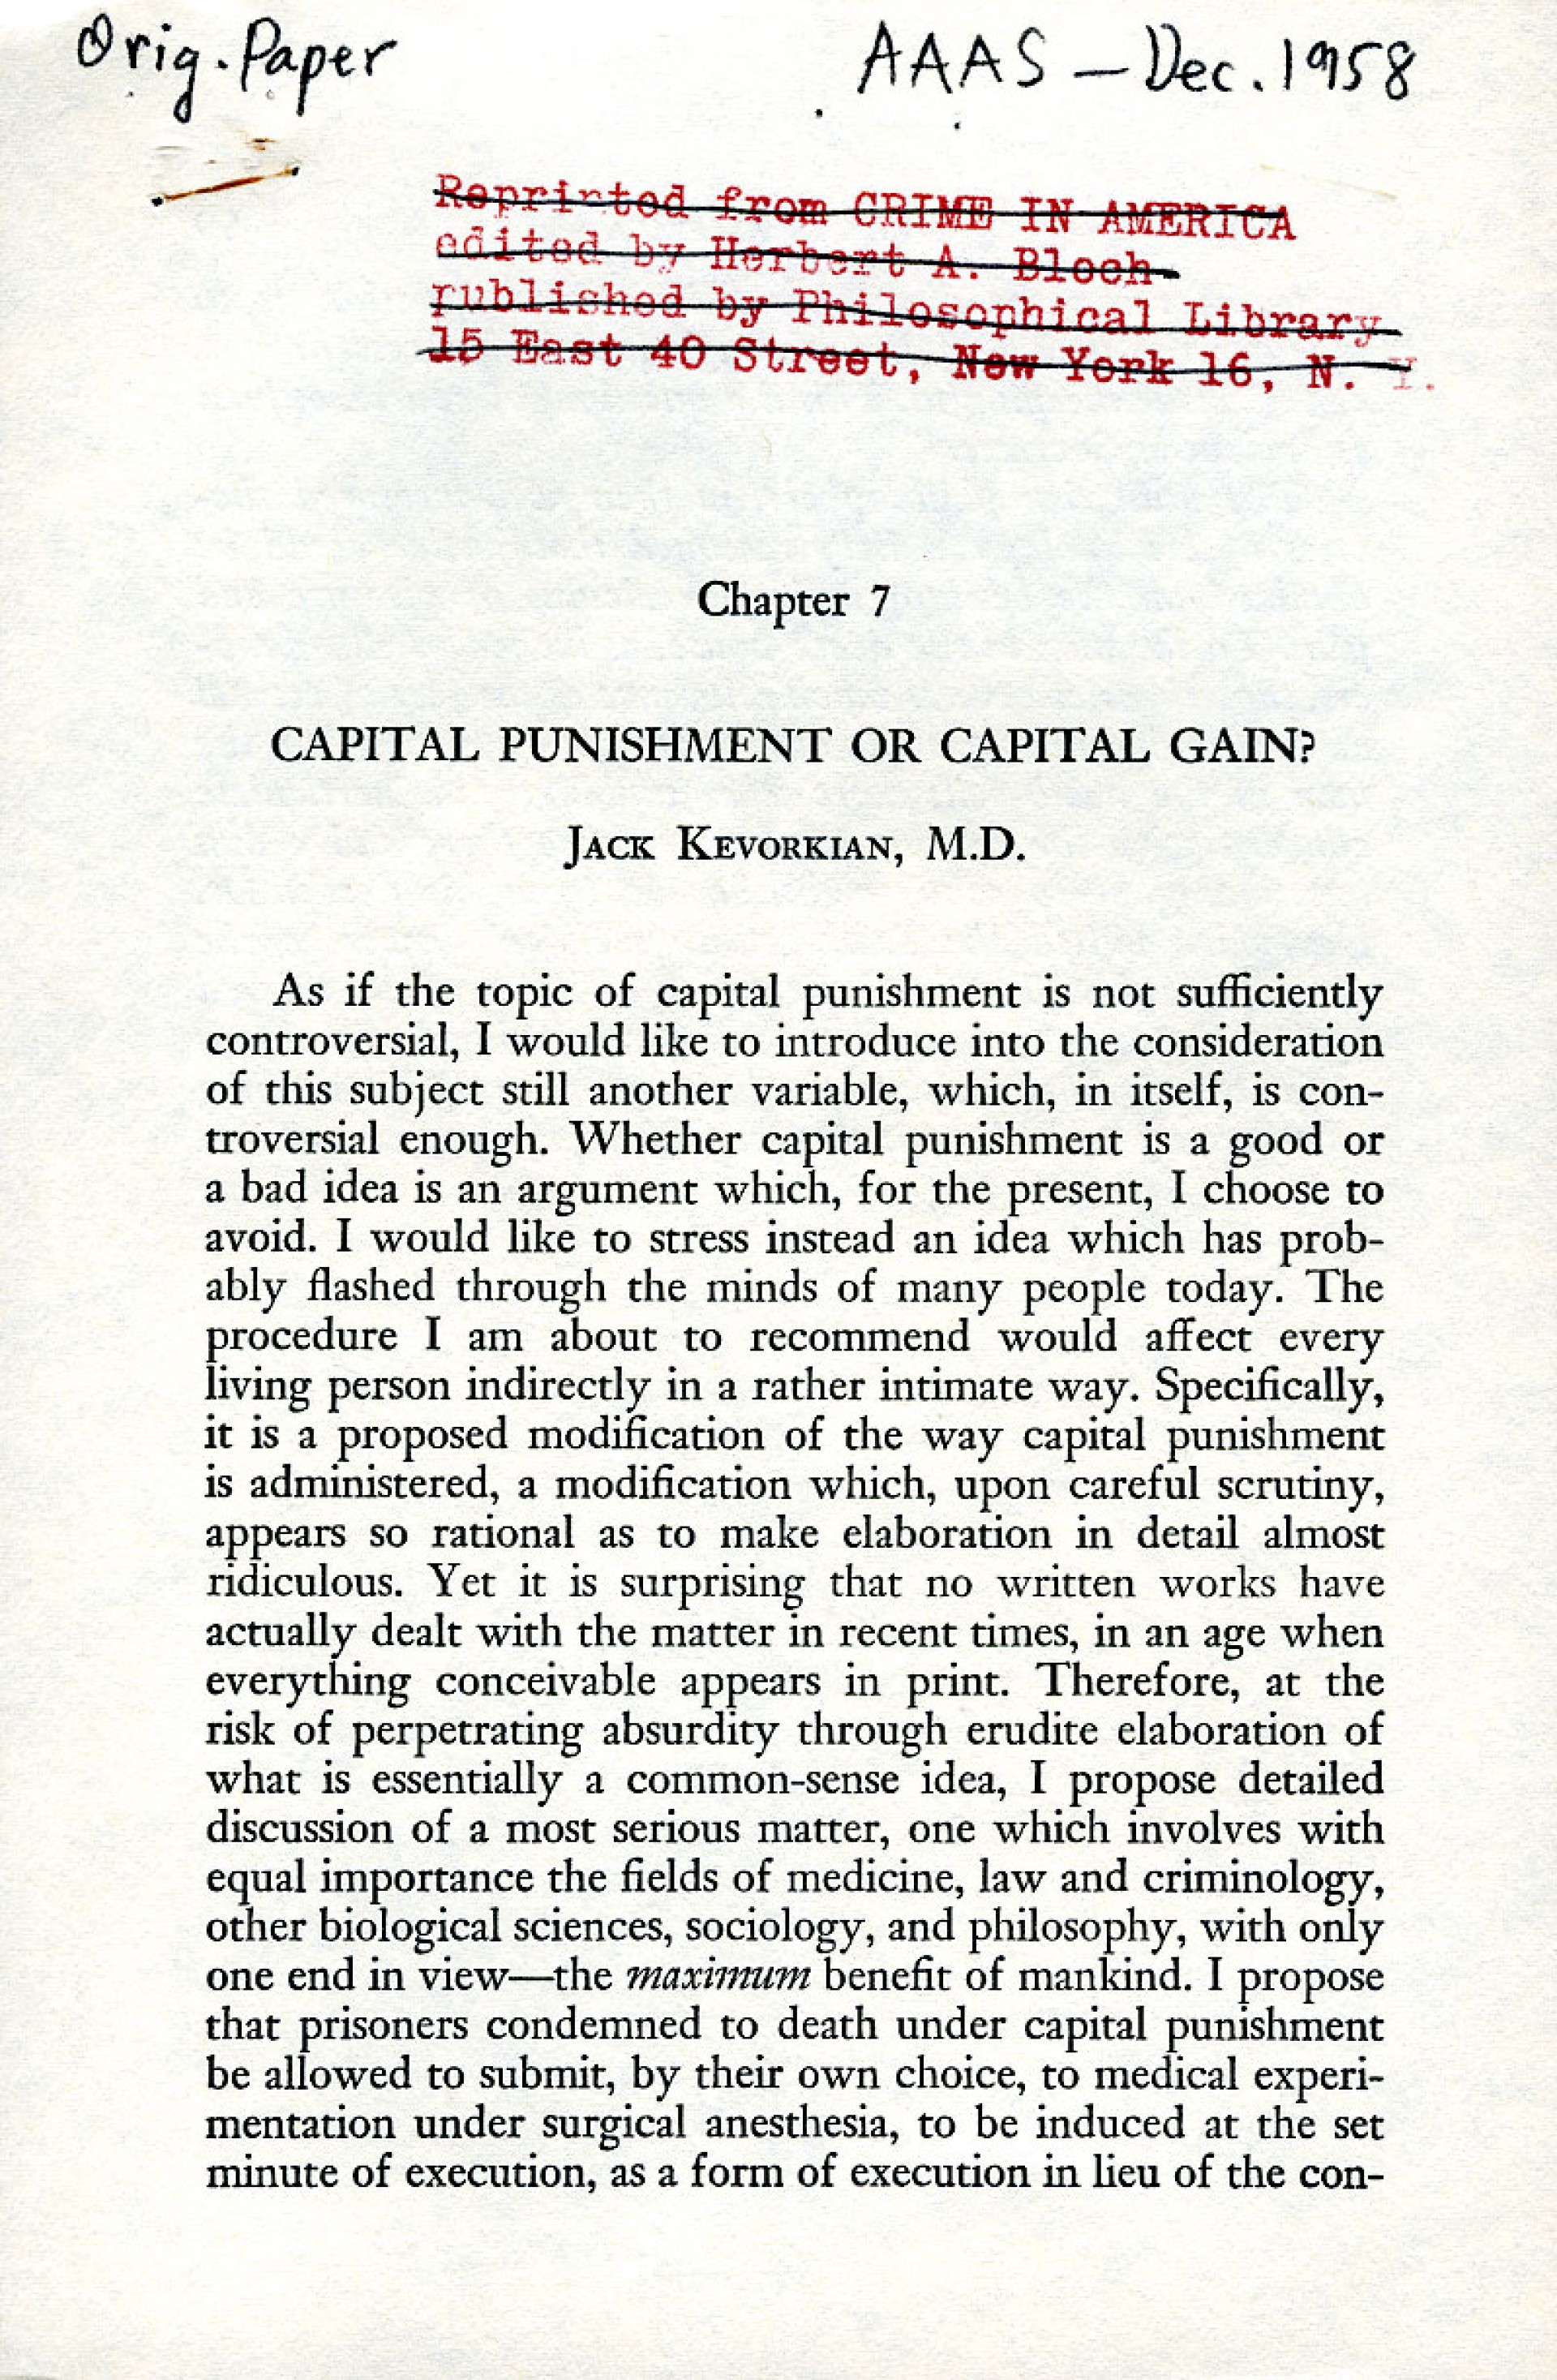 021 Essay Example Capital Breathtaking Promo Codes Capitalism In The Usa 1900 To 1940 New Deal Reviews 1920